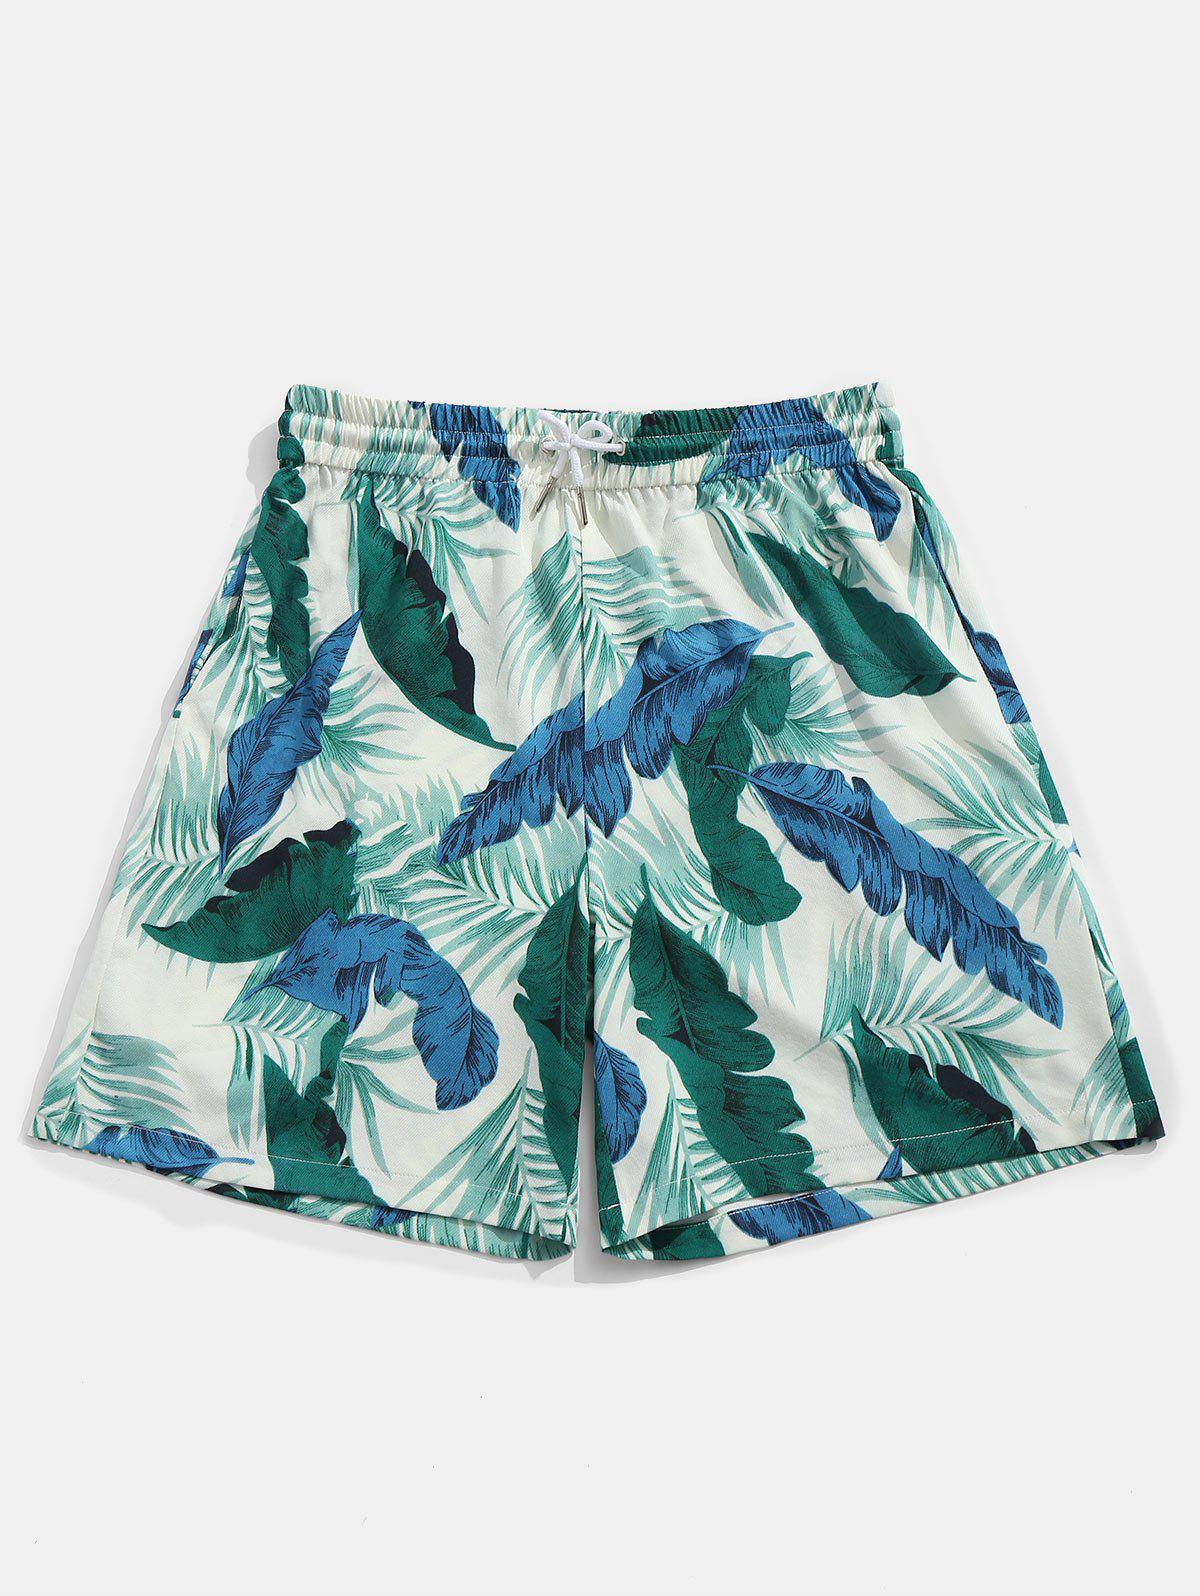 Banana Leaves Print Drawstring Beach Shorts - COLORMIX XL